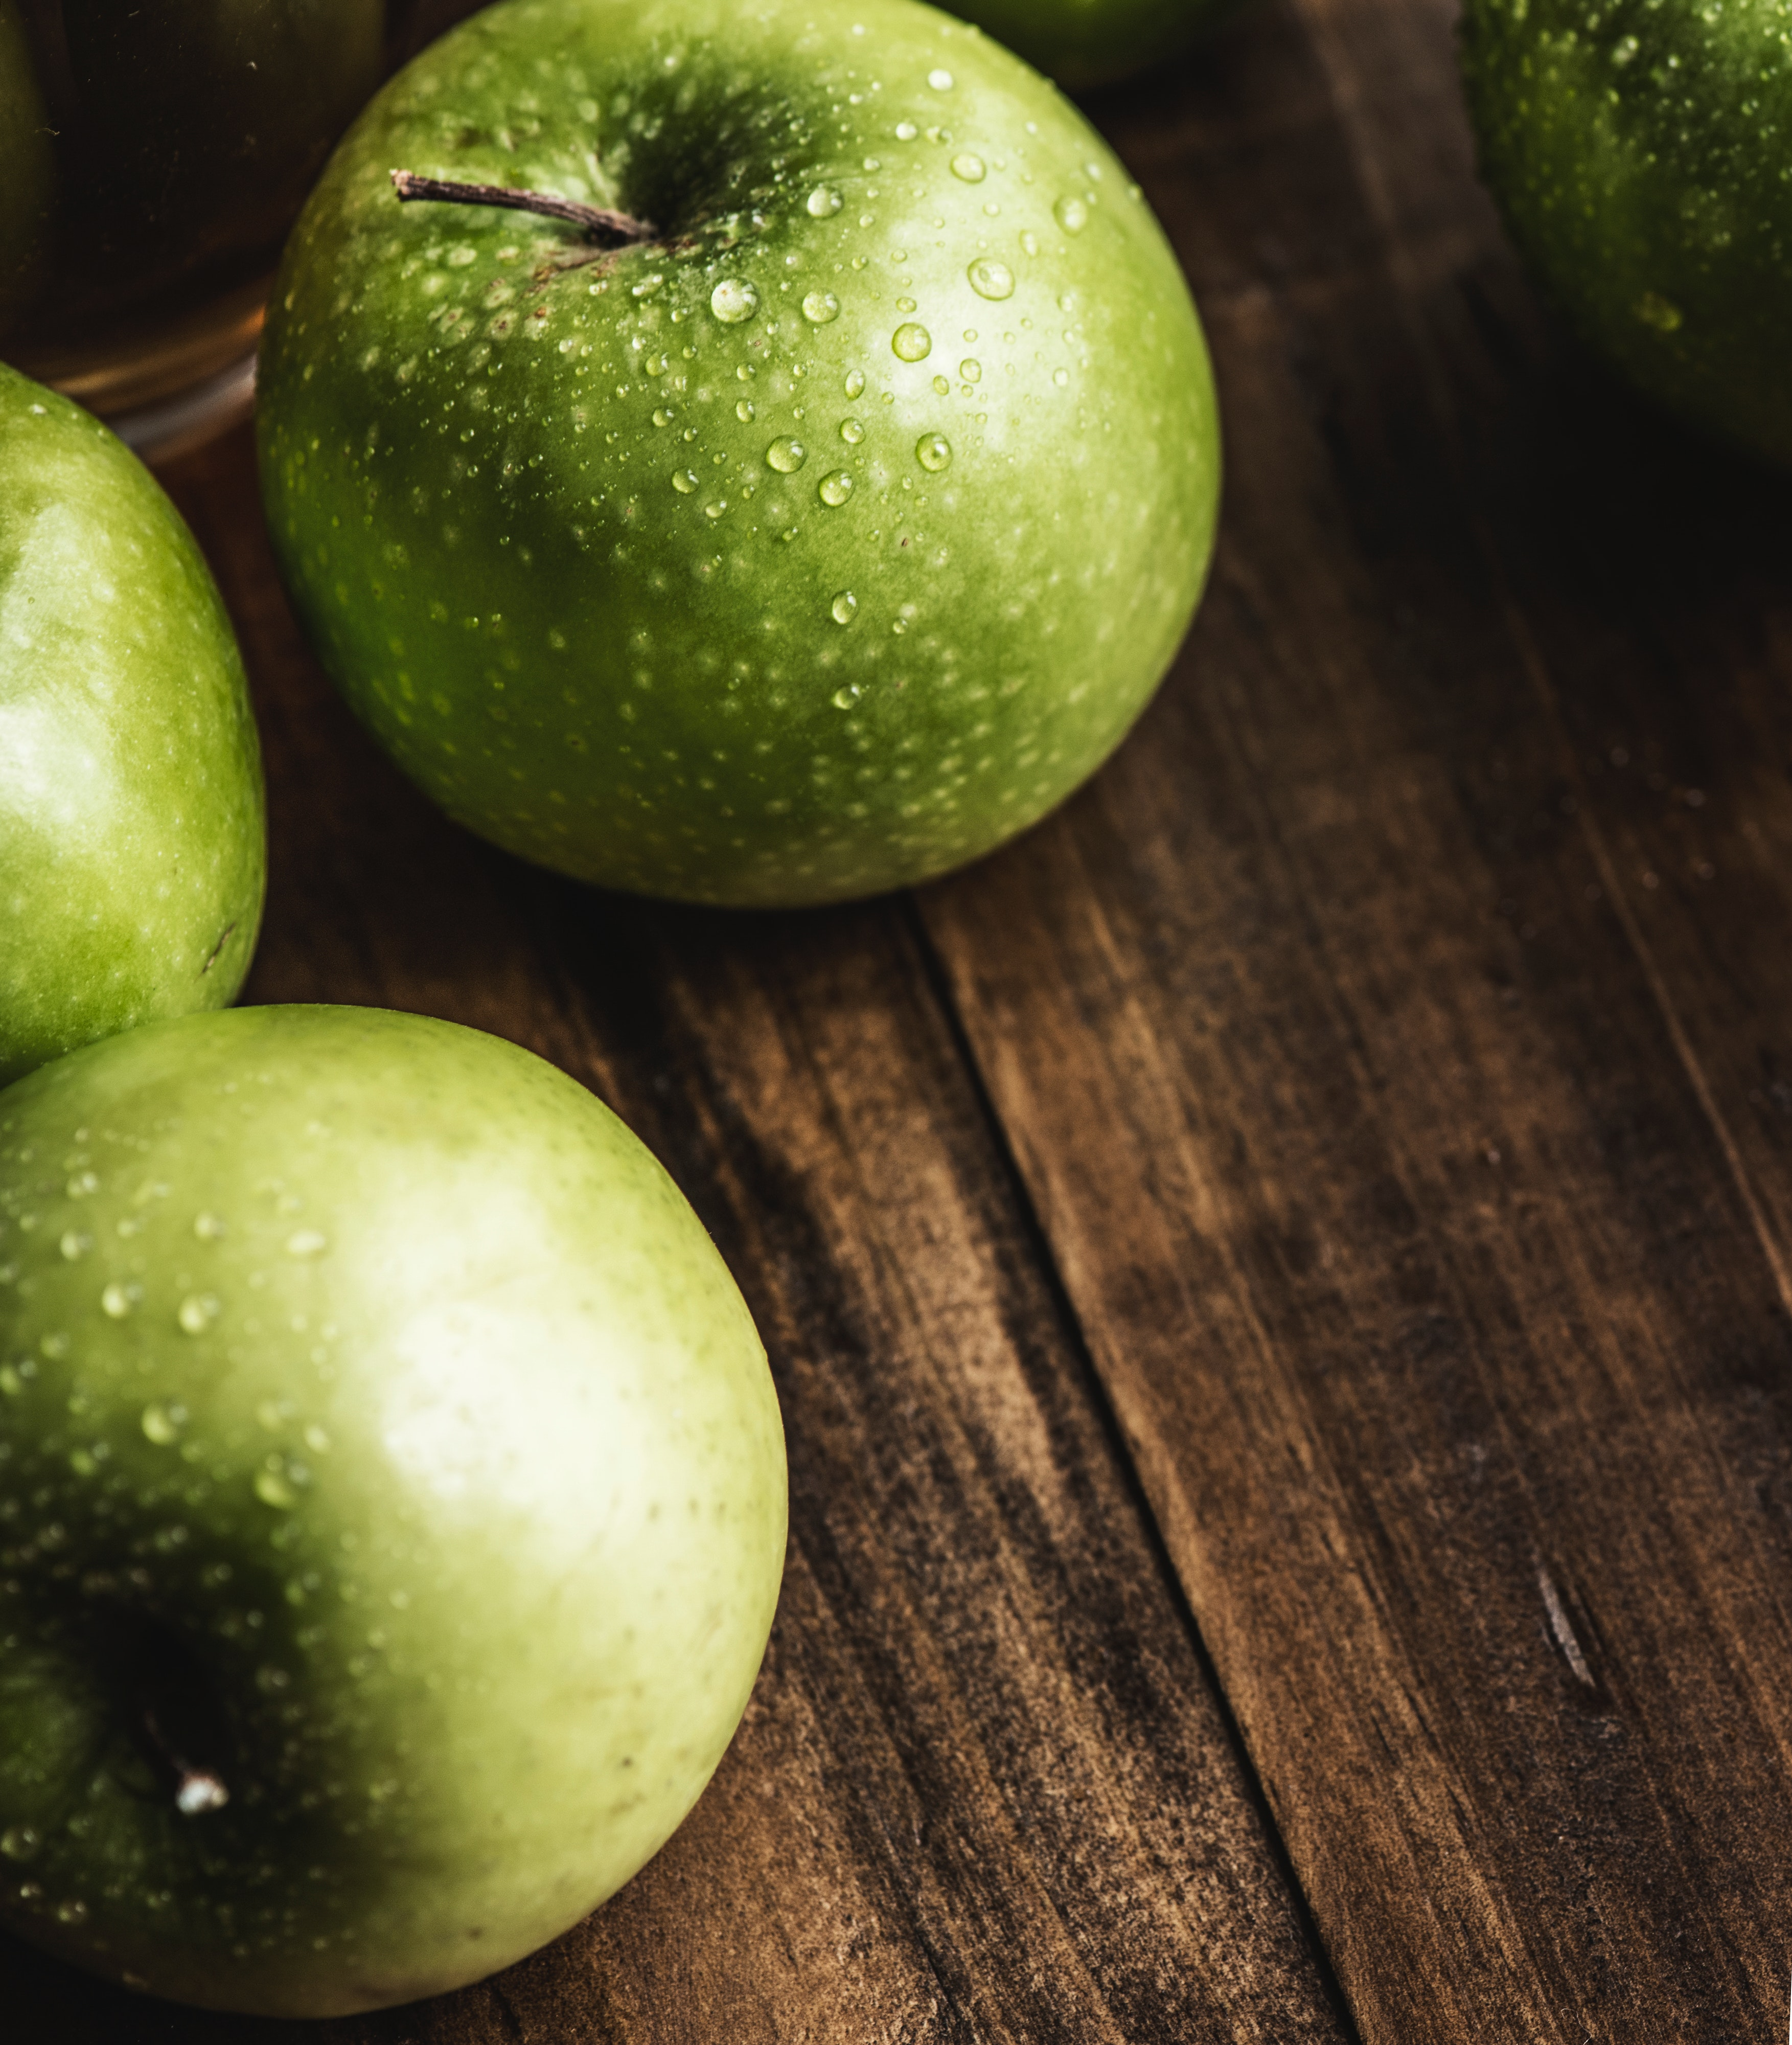 apples-close-up-color-1143552.jpg